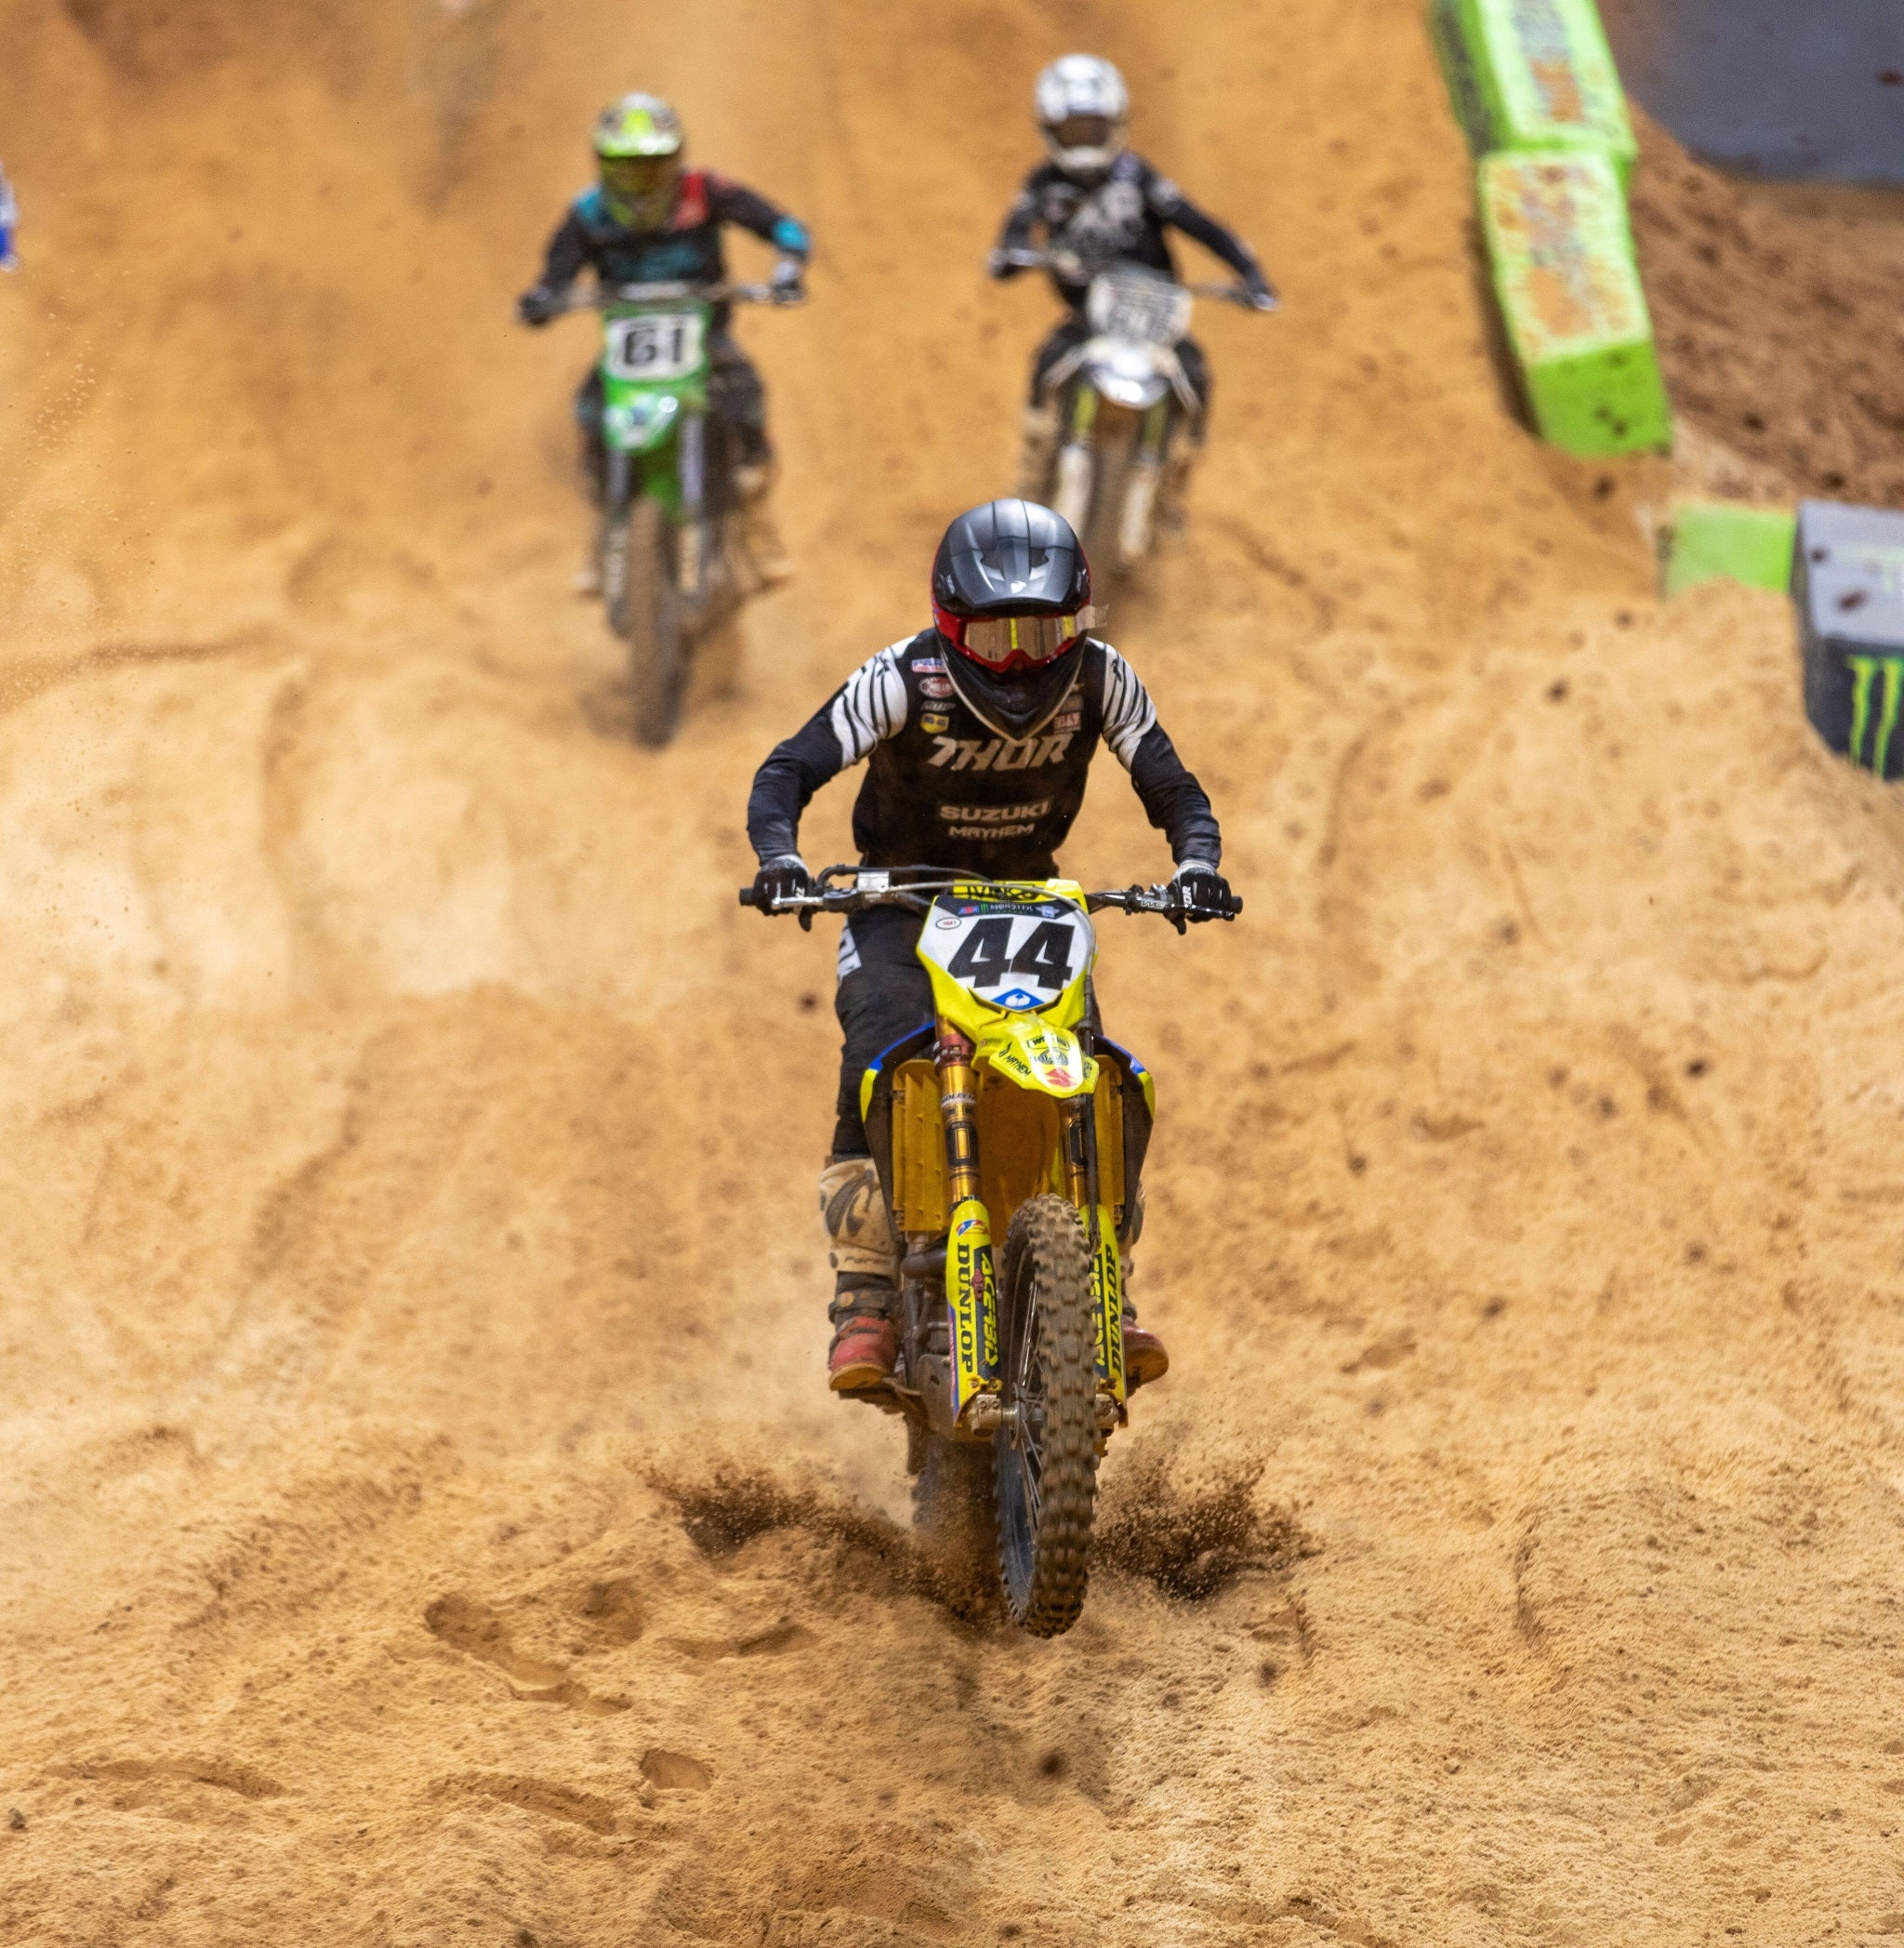 Kyle Cunningham (#44) goes down chasing his best result this year in Atlanta